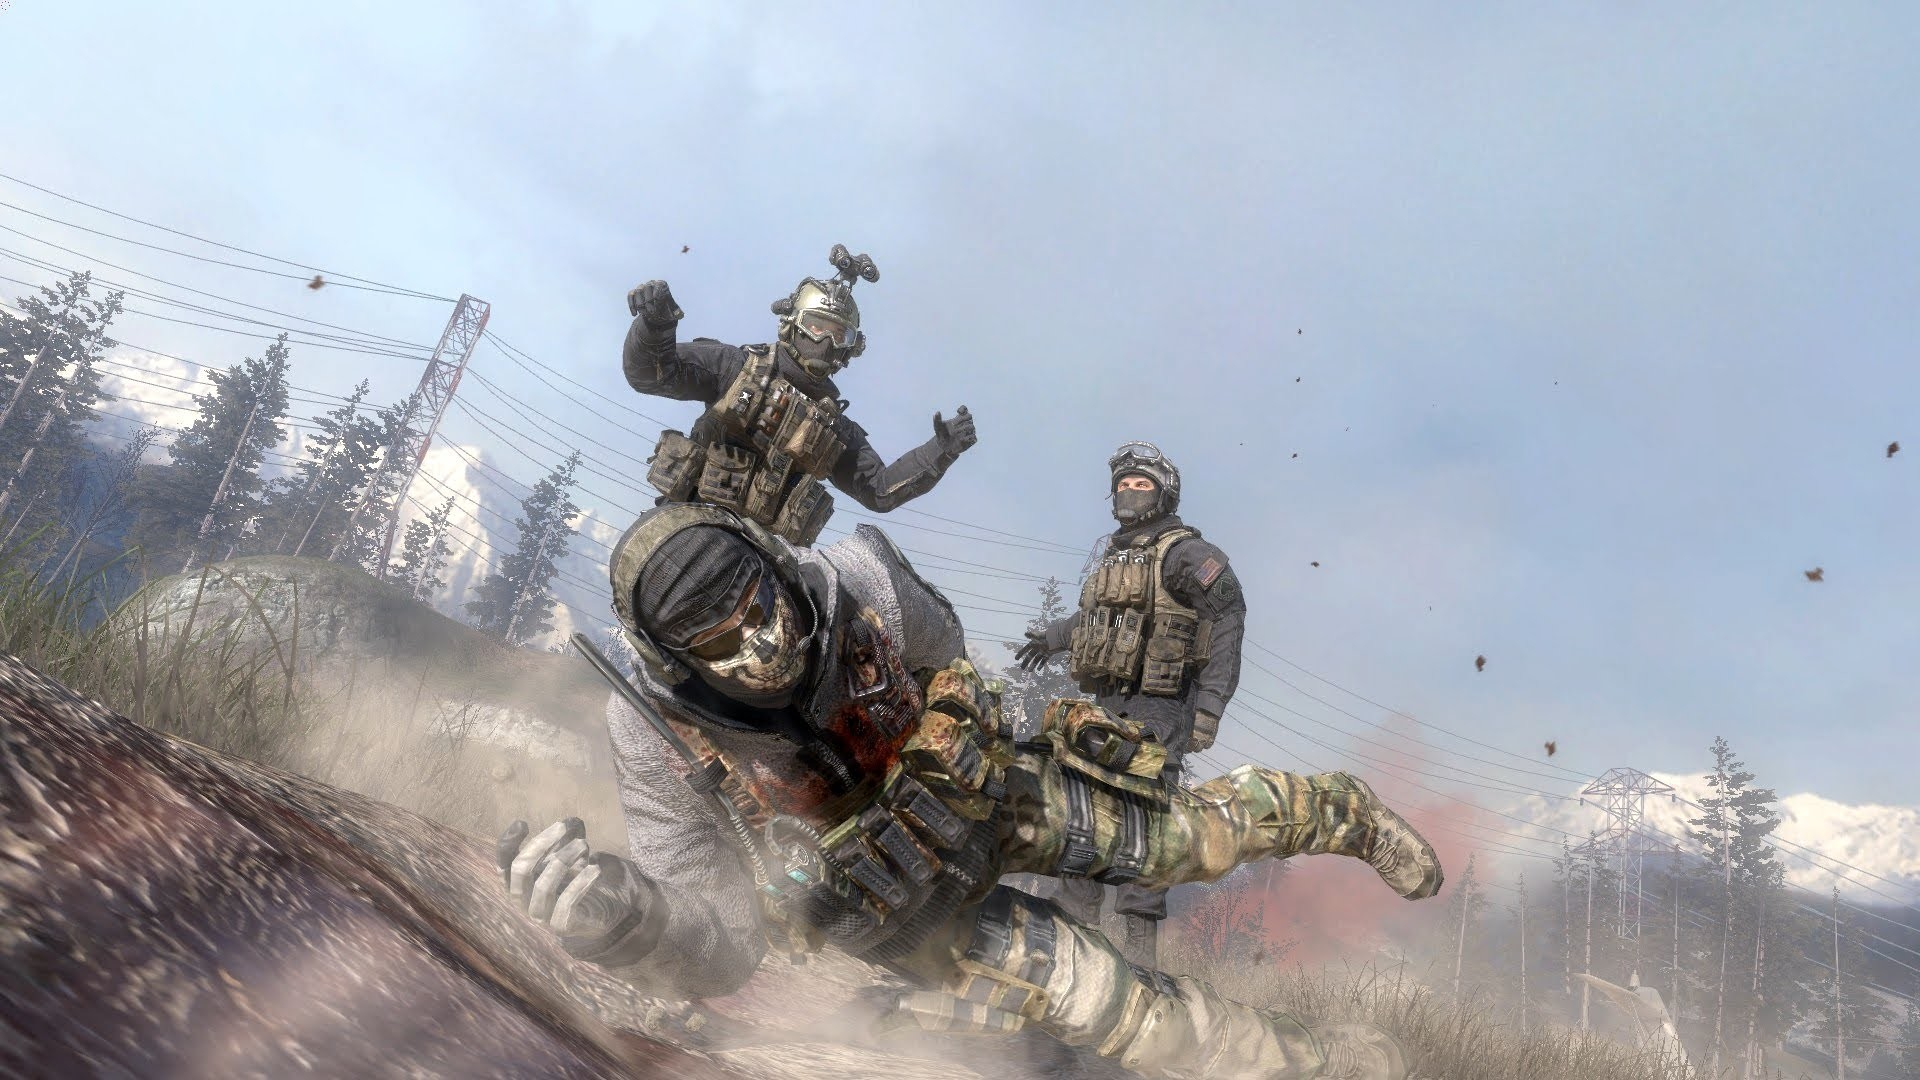 Mw2 Wallpaper Hd 74 Pictures